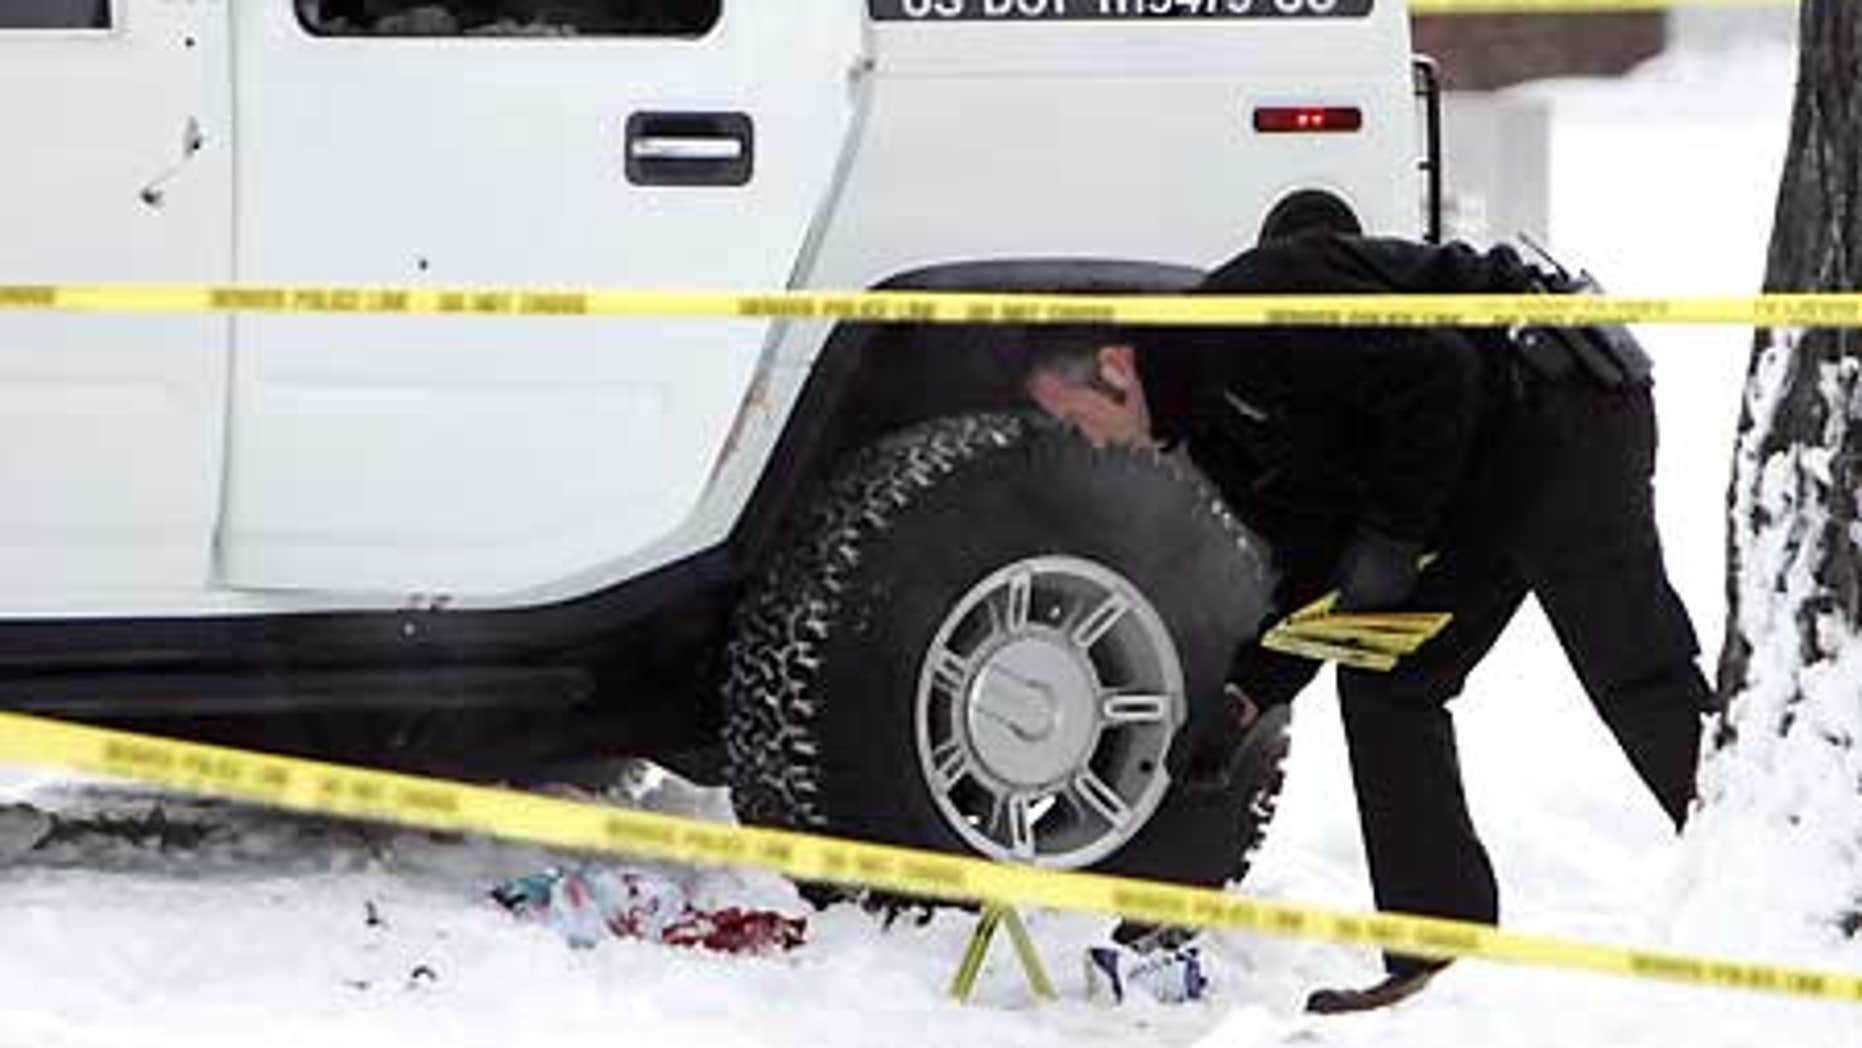 Jan. 1, 2007: An investigator with the Denver Police Department places evidence markers next to the Hummer limo in which Darrent Williams was killed.